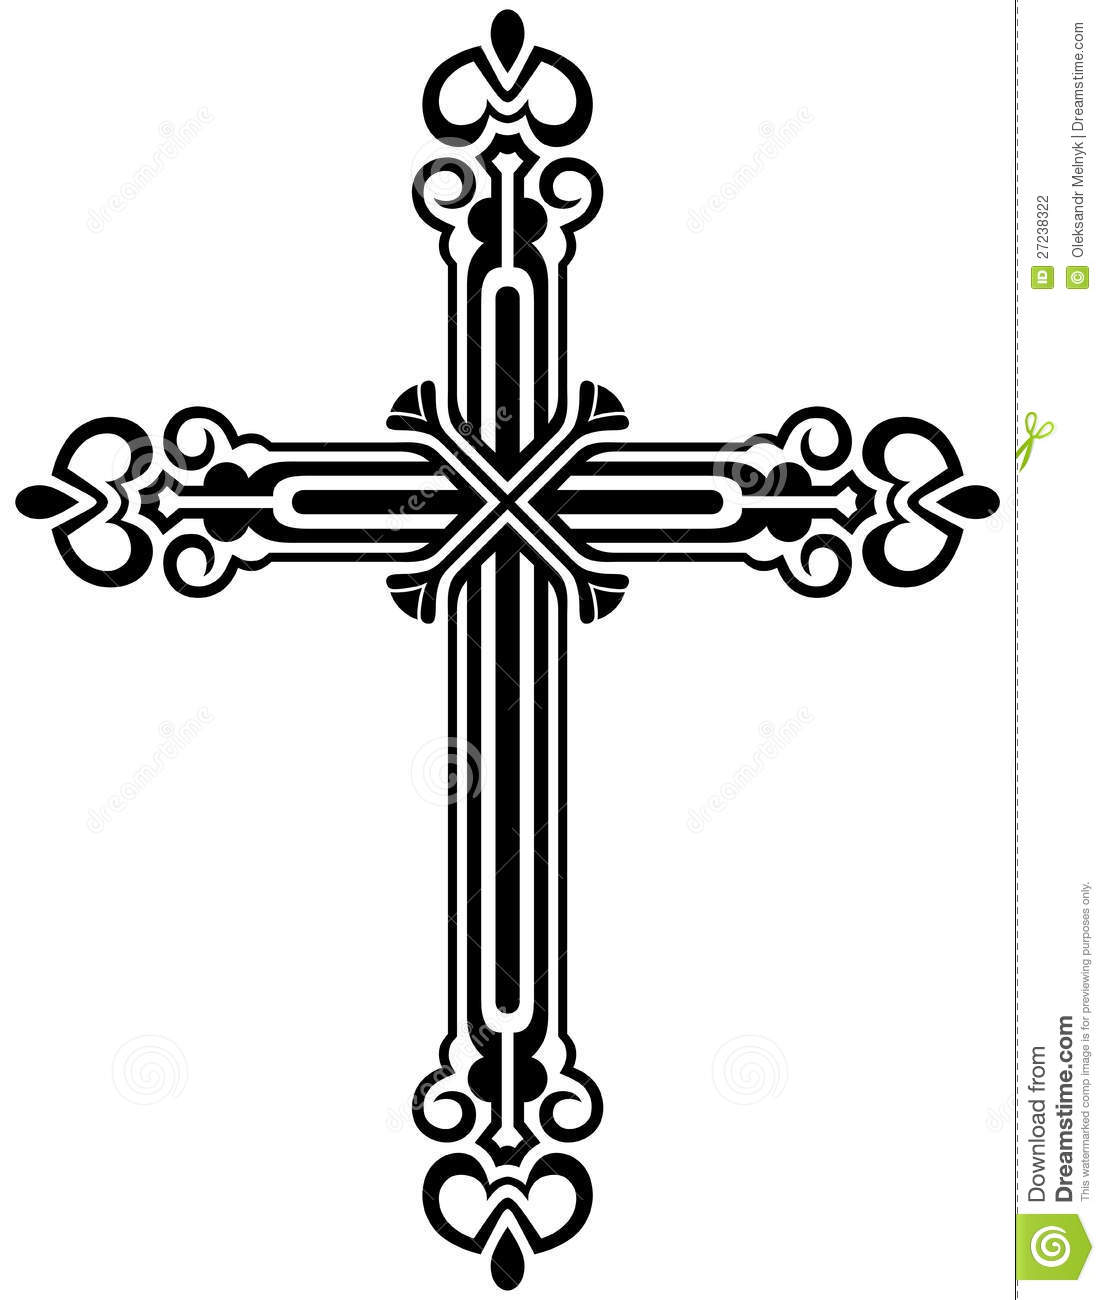 Black And White Religious Clipart - Clipart Kid